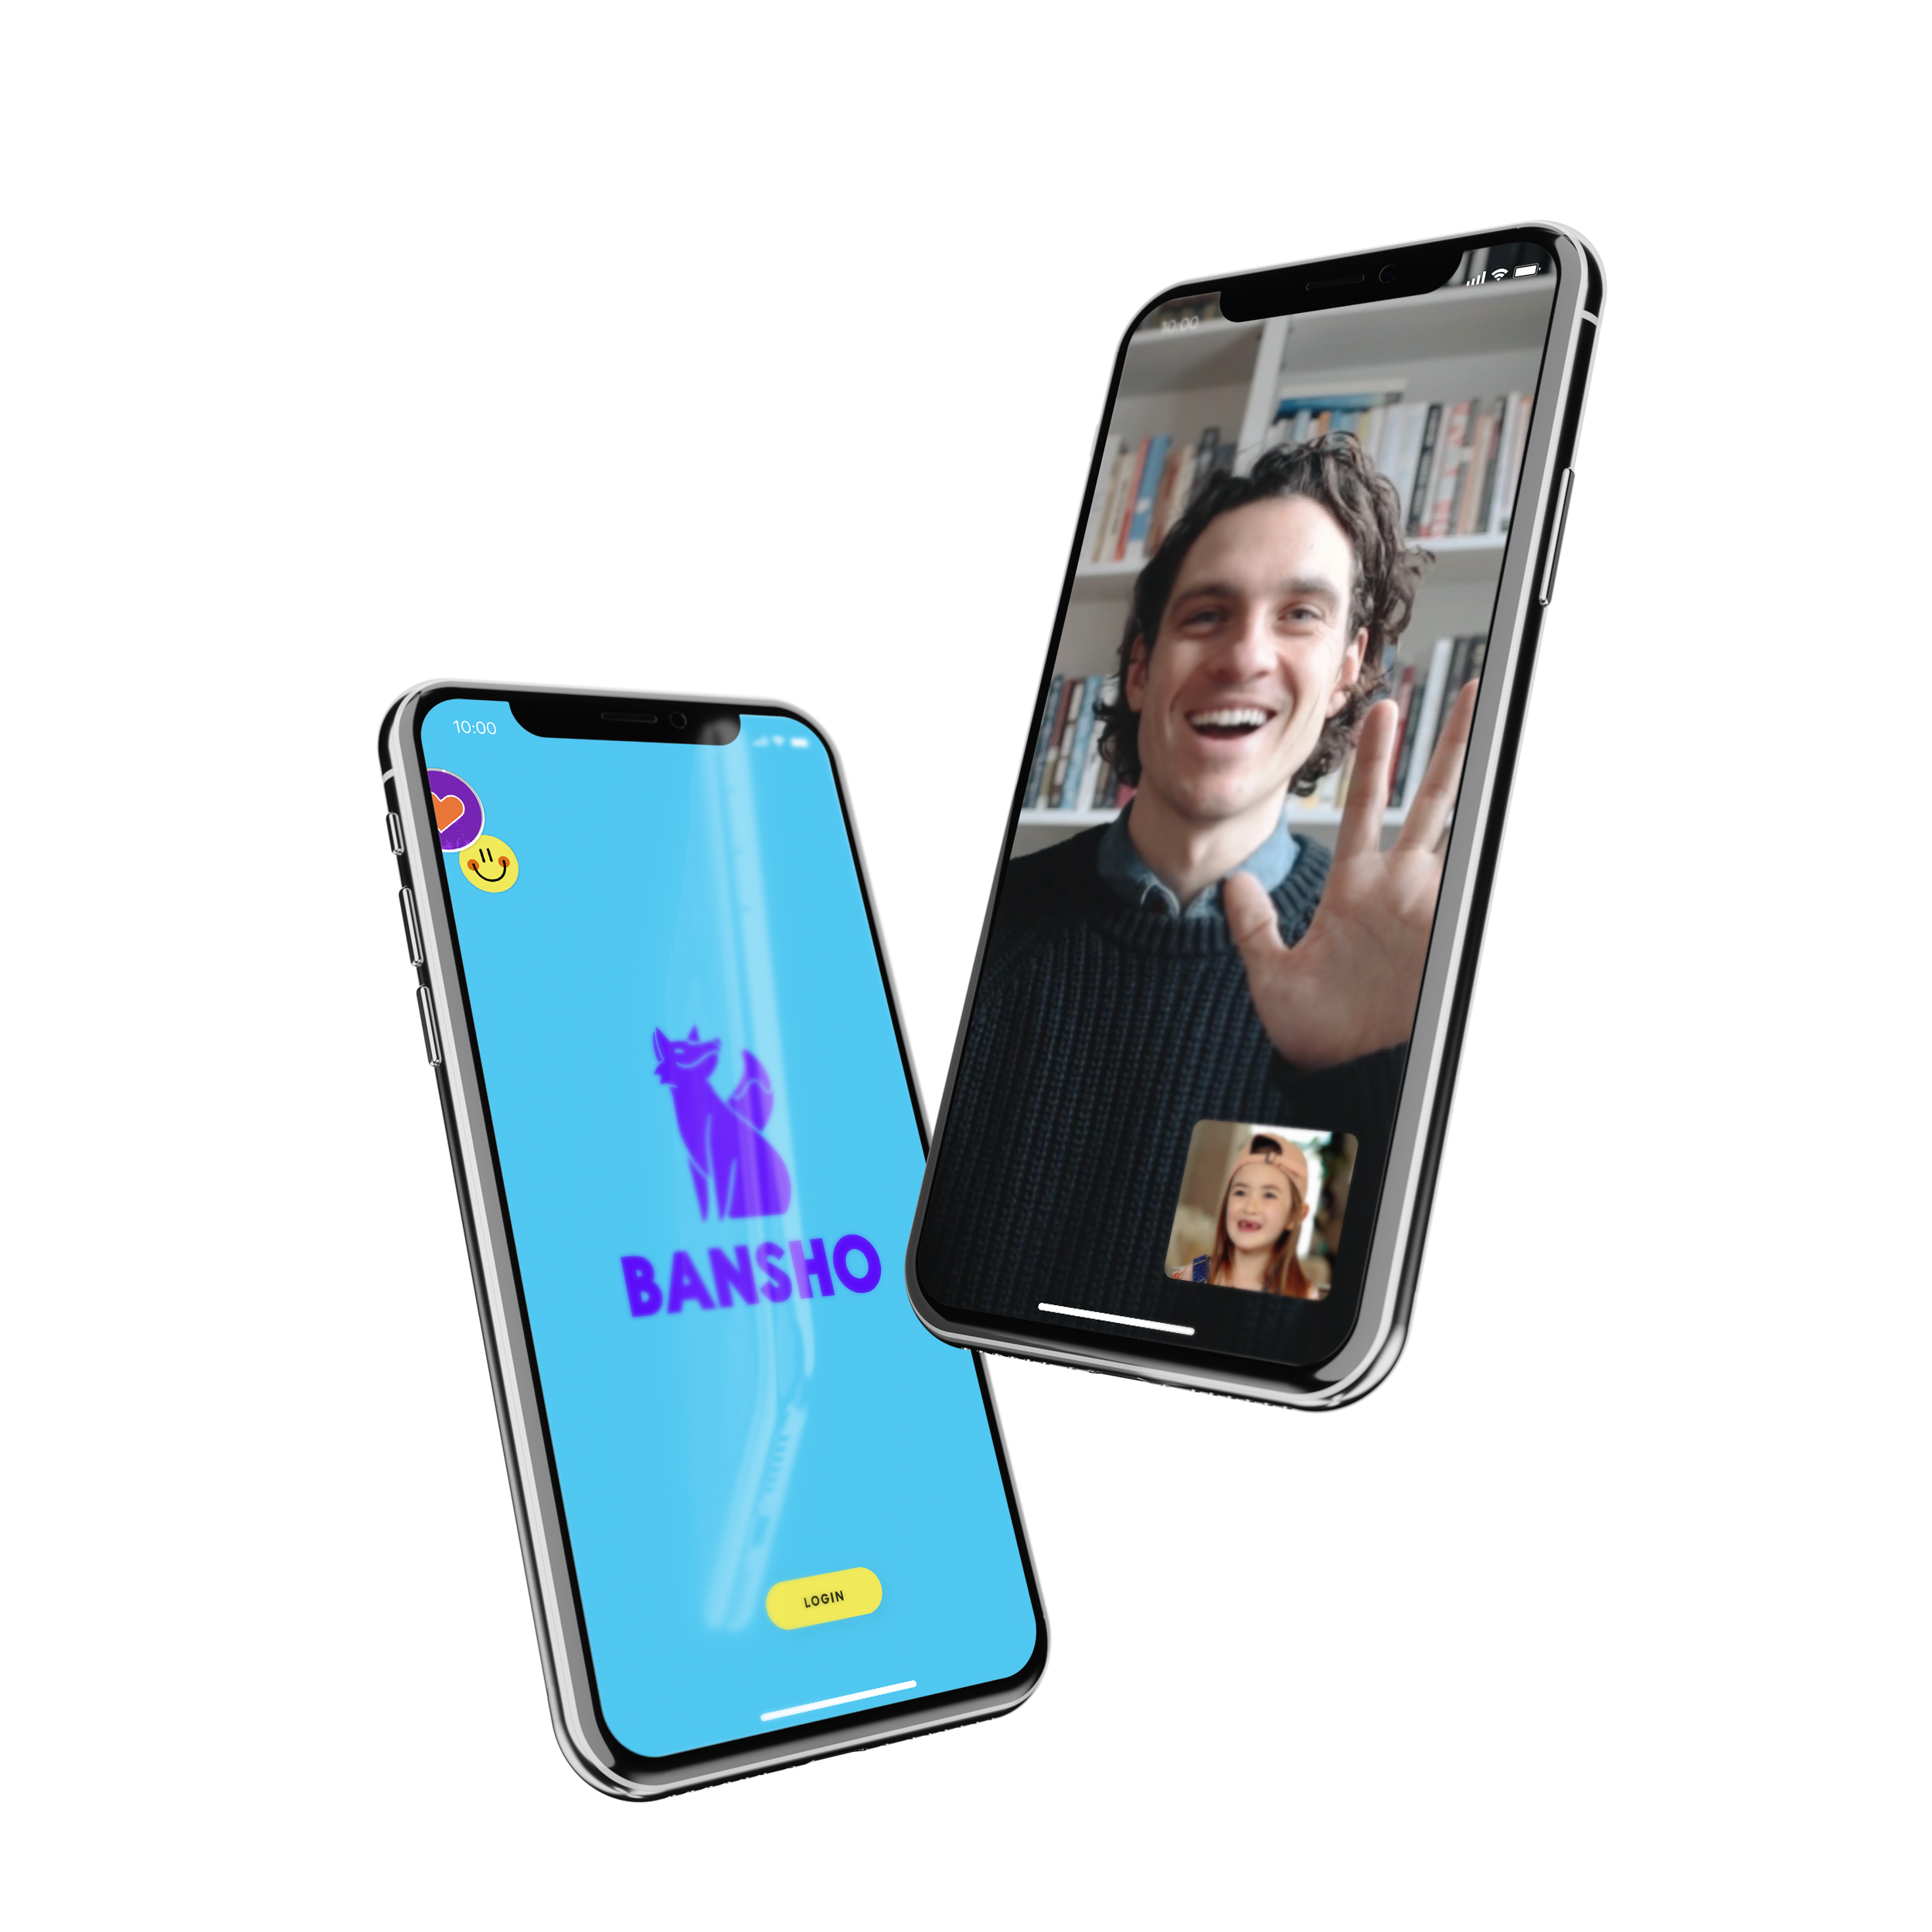 Two iPhones floating next to one another. One shows the Bansho logo. The other shows a video chat between a learning partner and student.